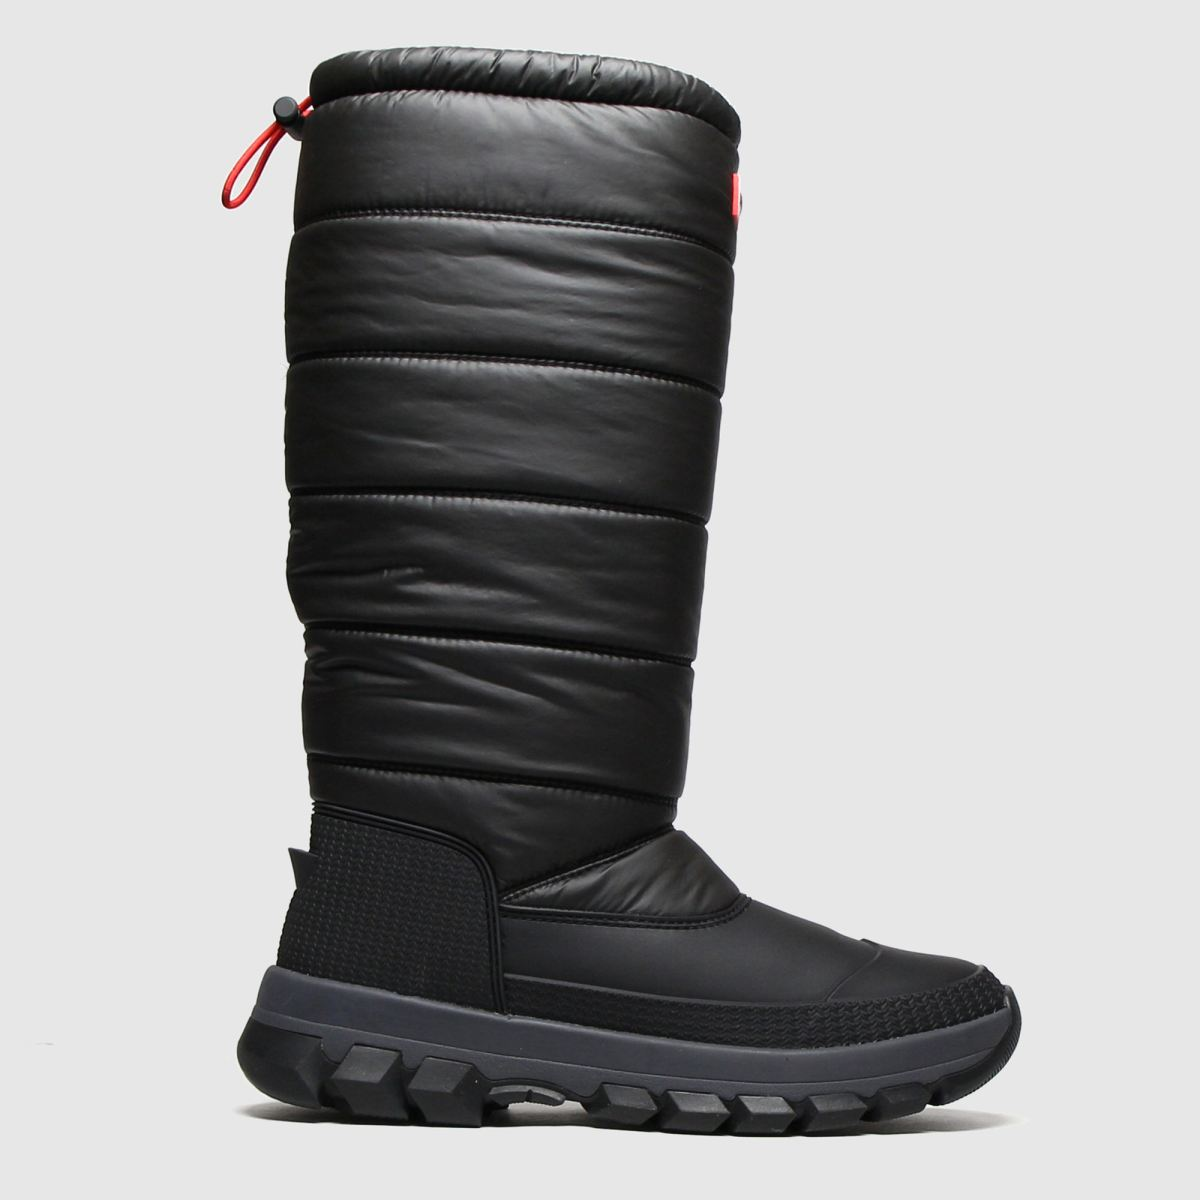 Hunter Black Insulated Snow Boot Tall Boots